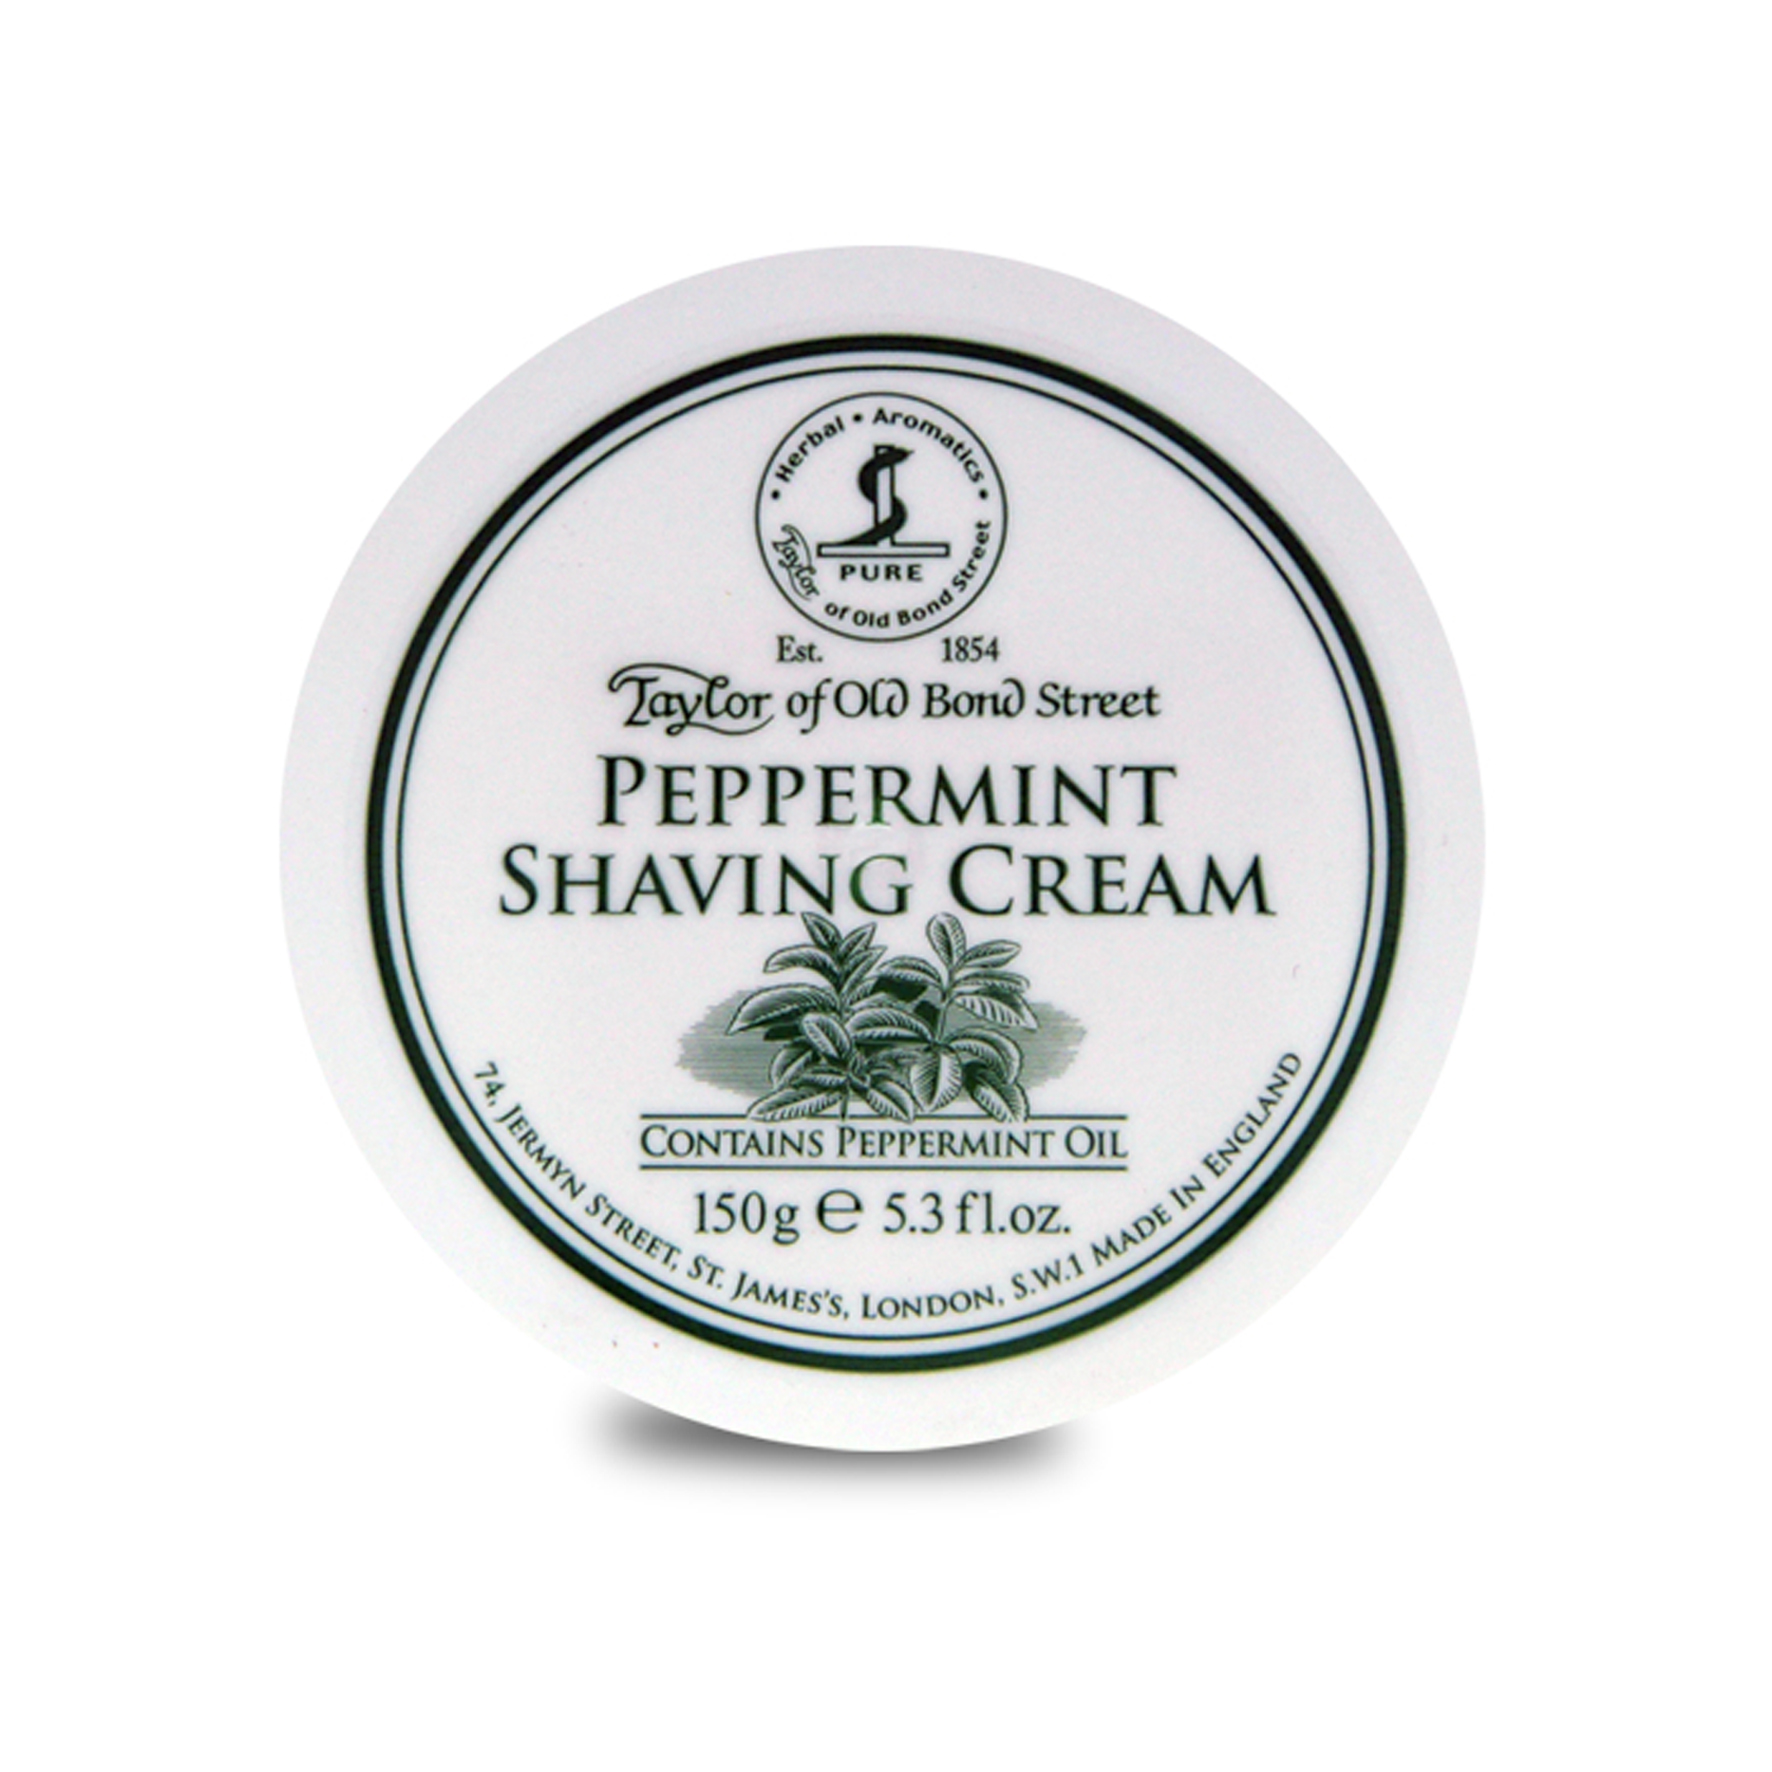 01018 peppermint shave cream 150g - Taylor Of Old Bond Street Peppermint Shaving Cream Bowl 150G - 01018